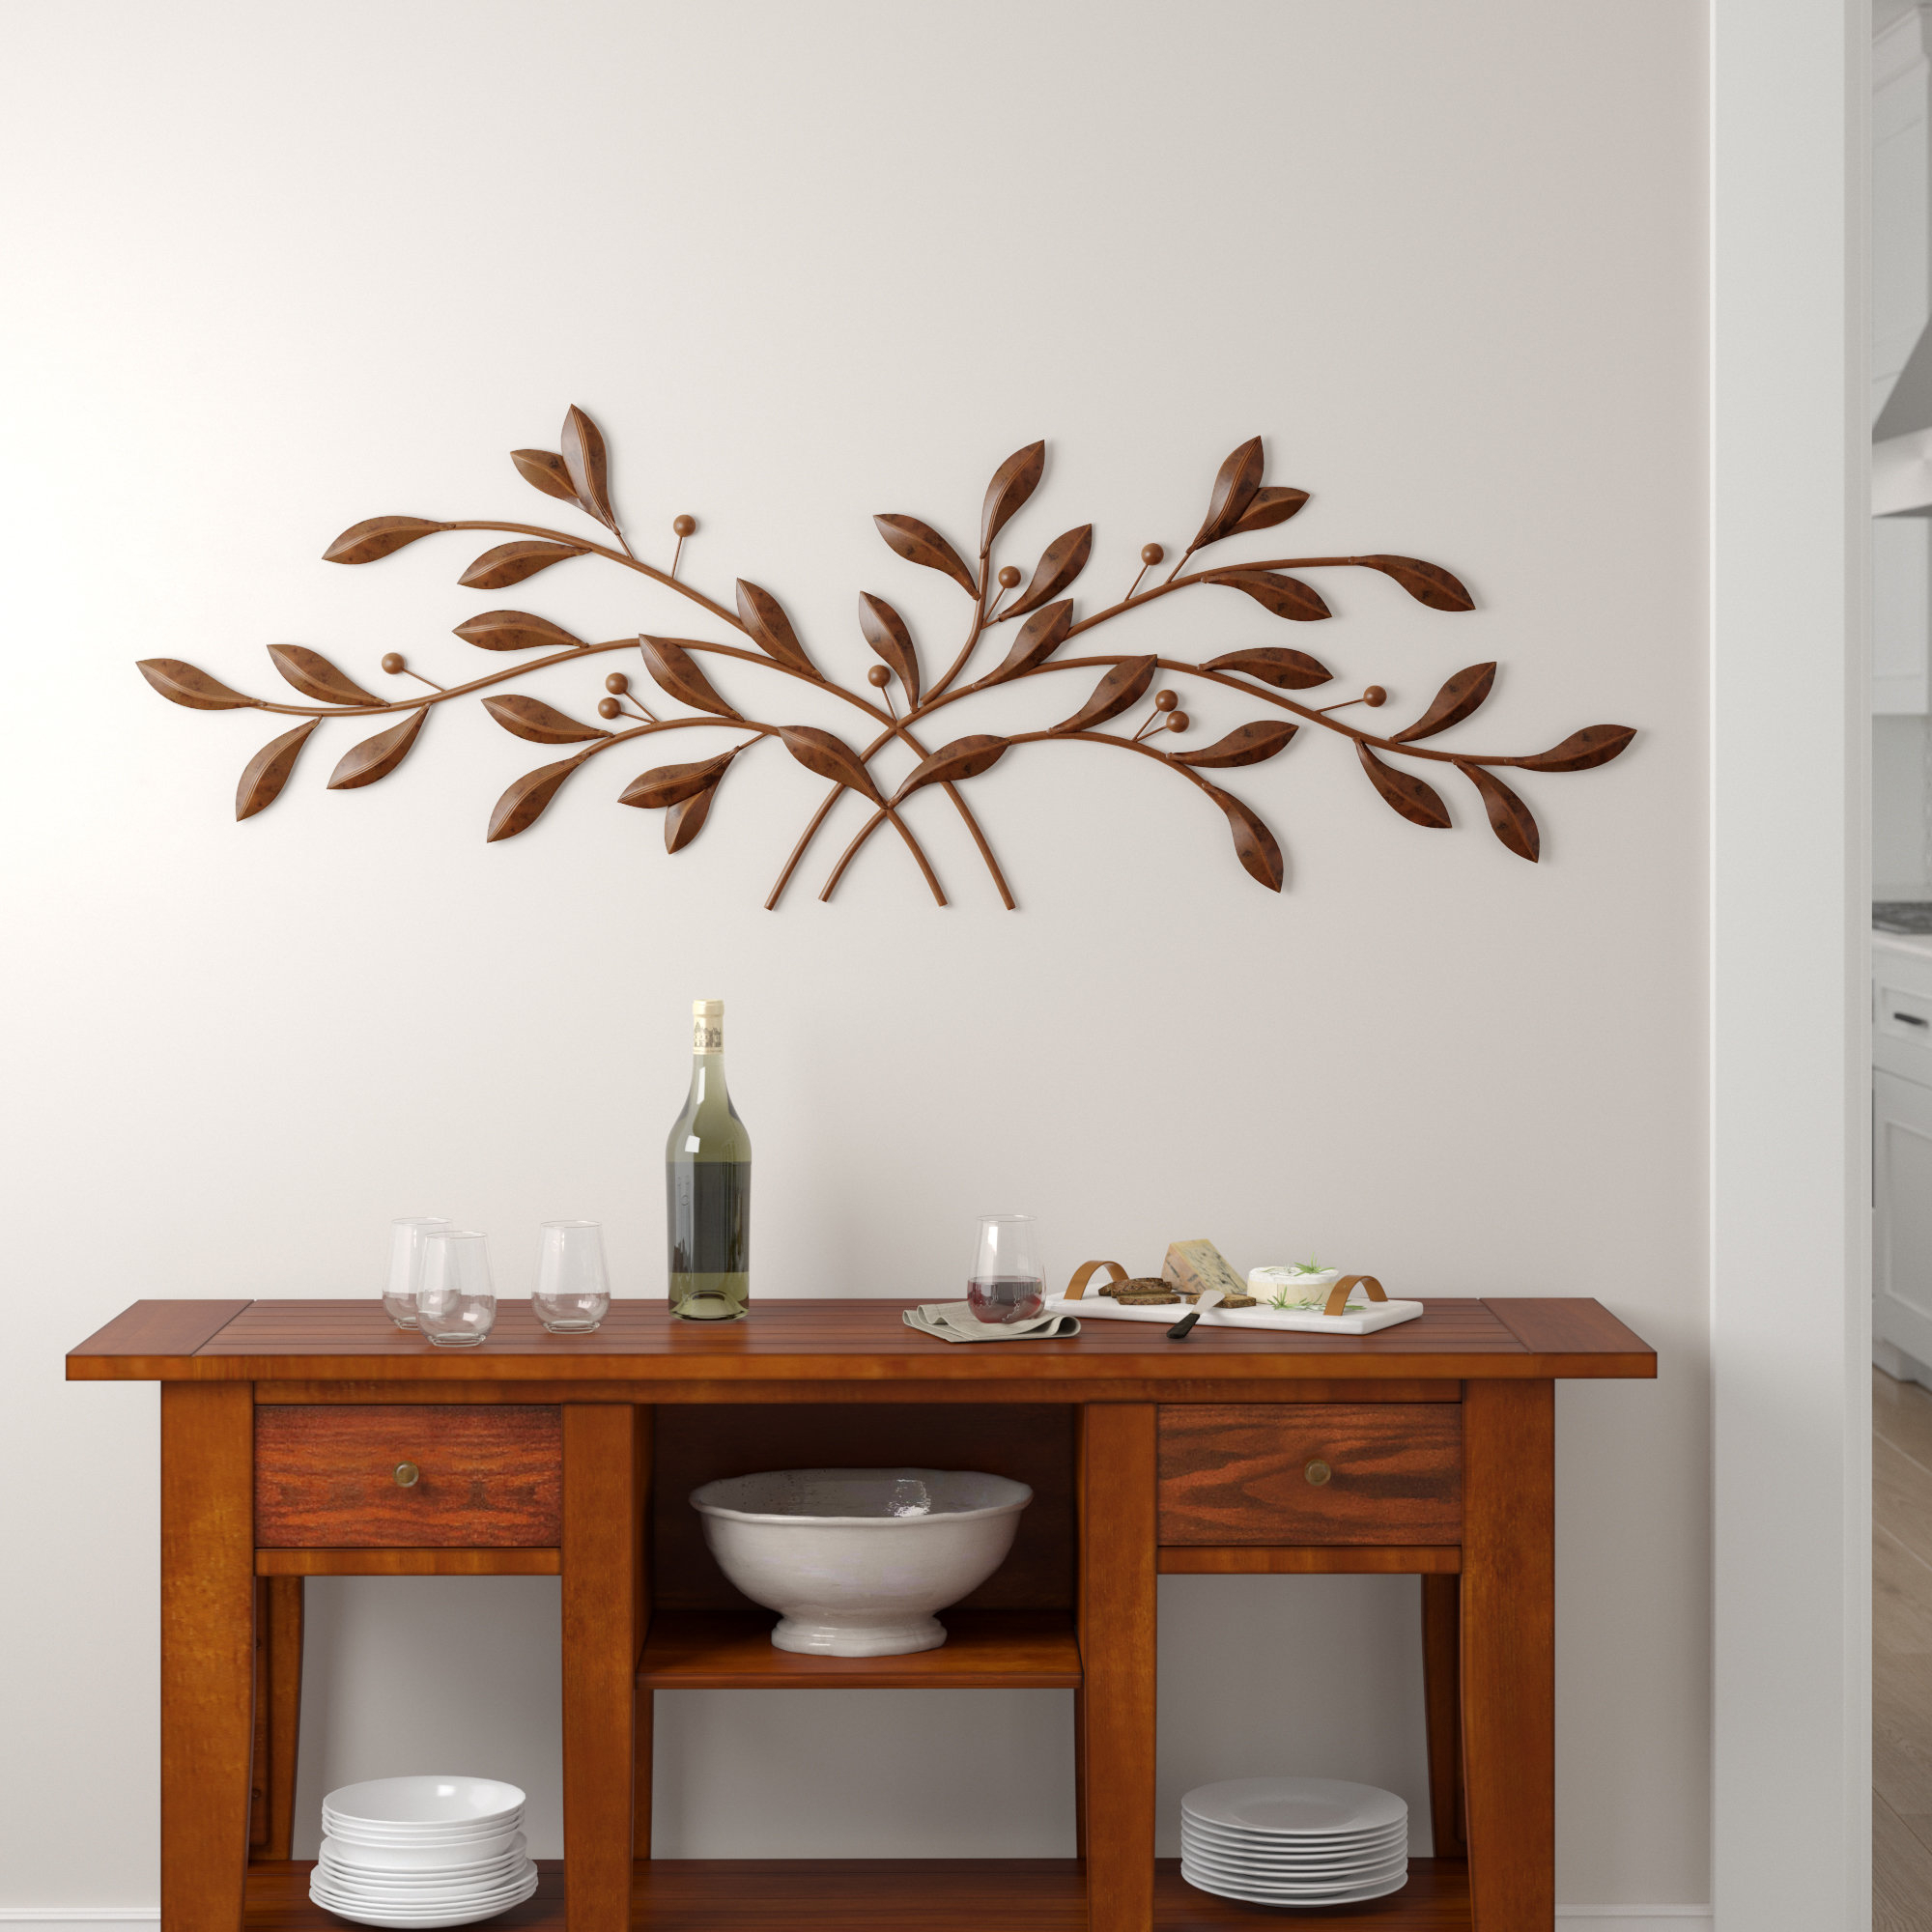 Metal Leaf Wall Hanging | Wayfair Pertaining To Metal Leaf Wall Decor By Red Barrel Studio (View 13 of 30)